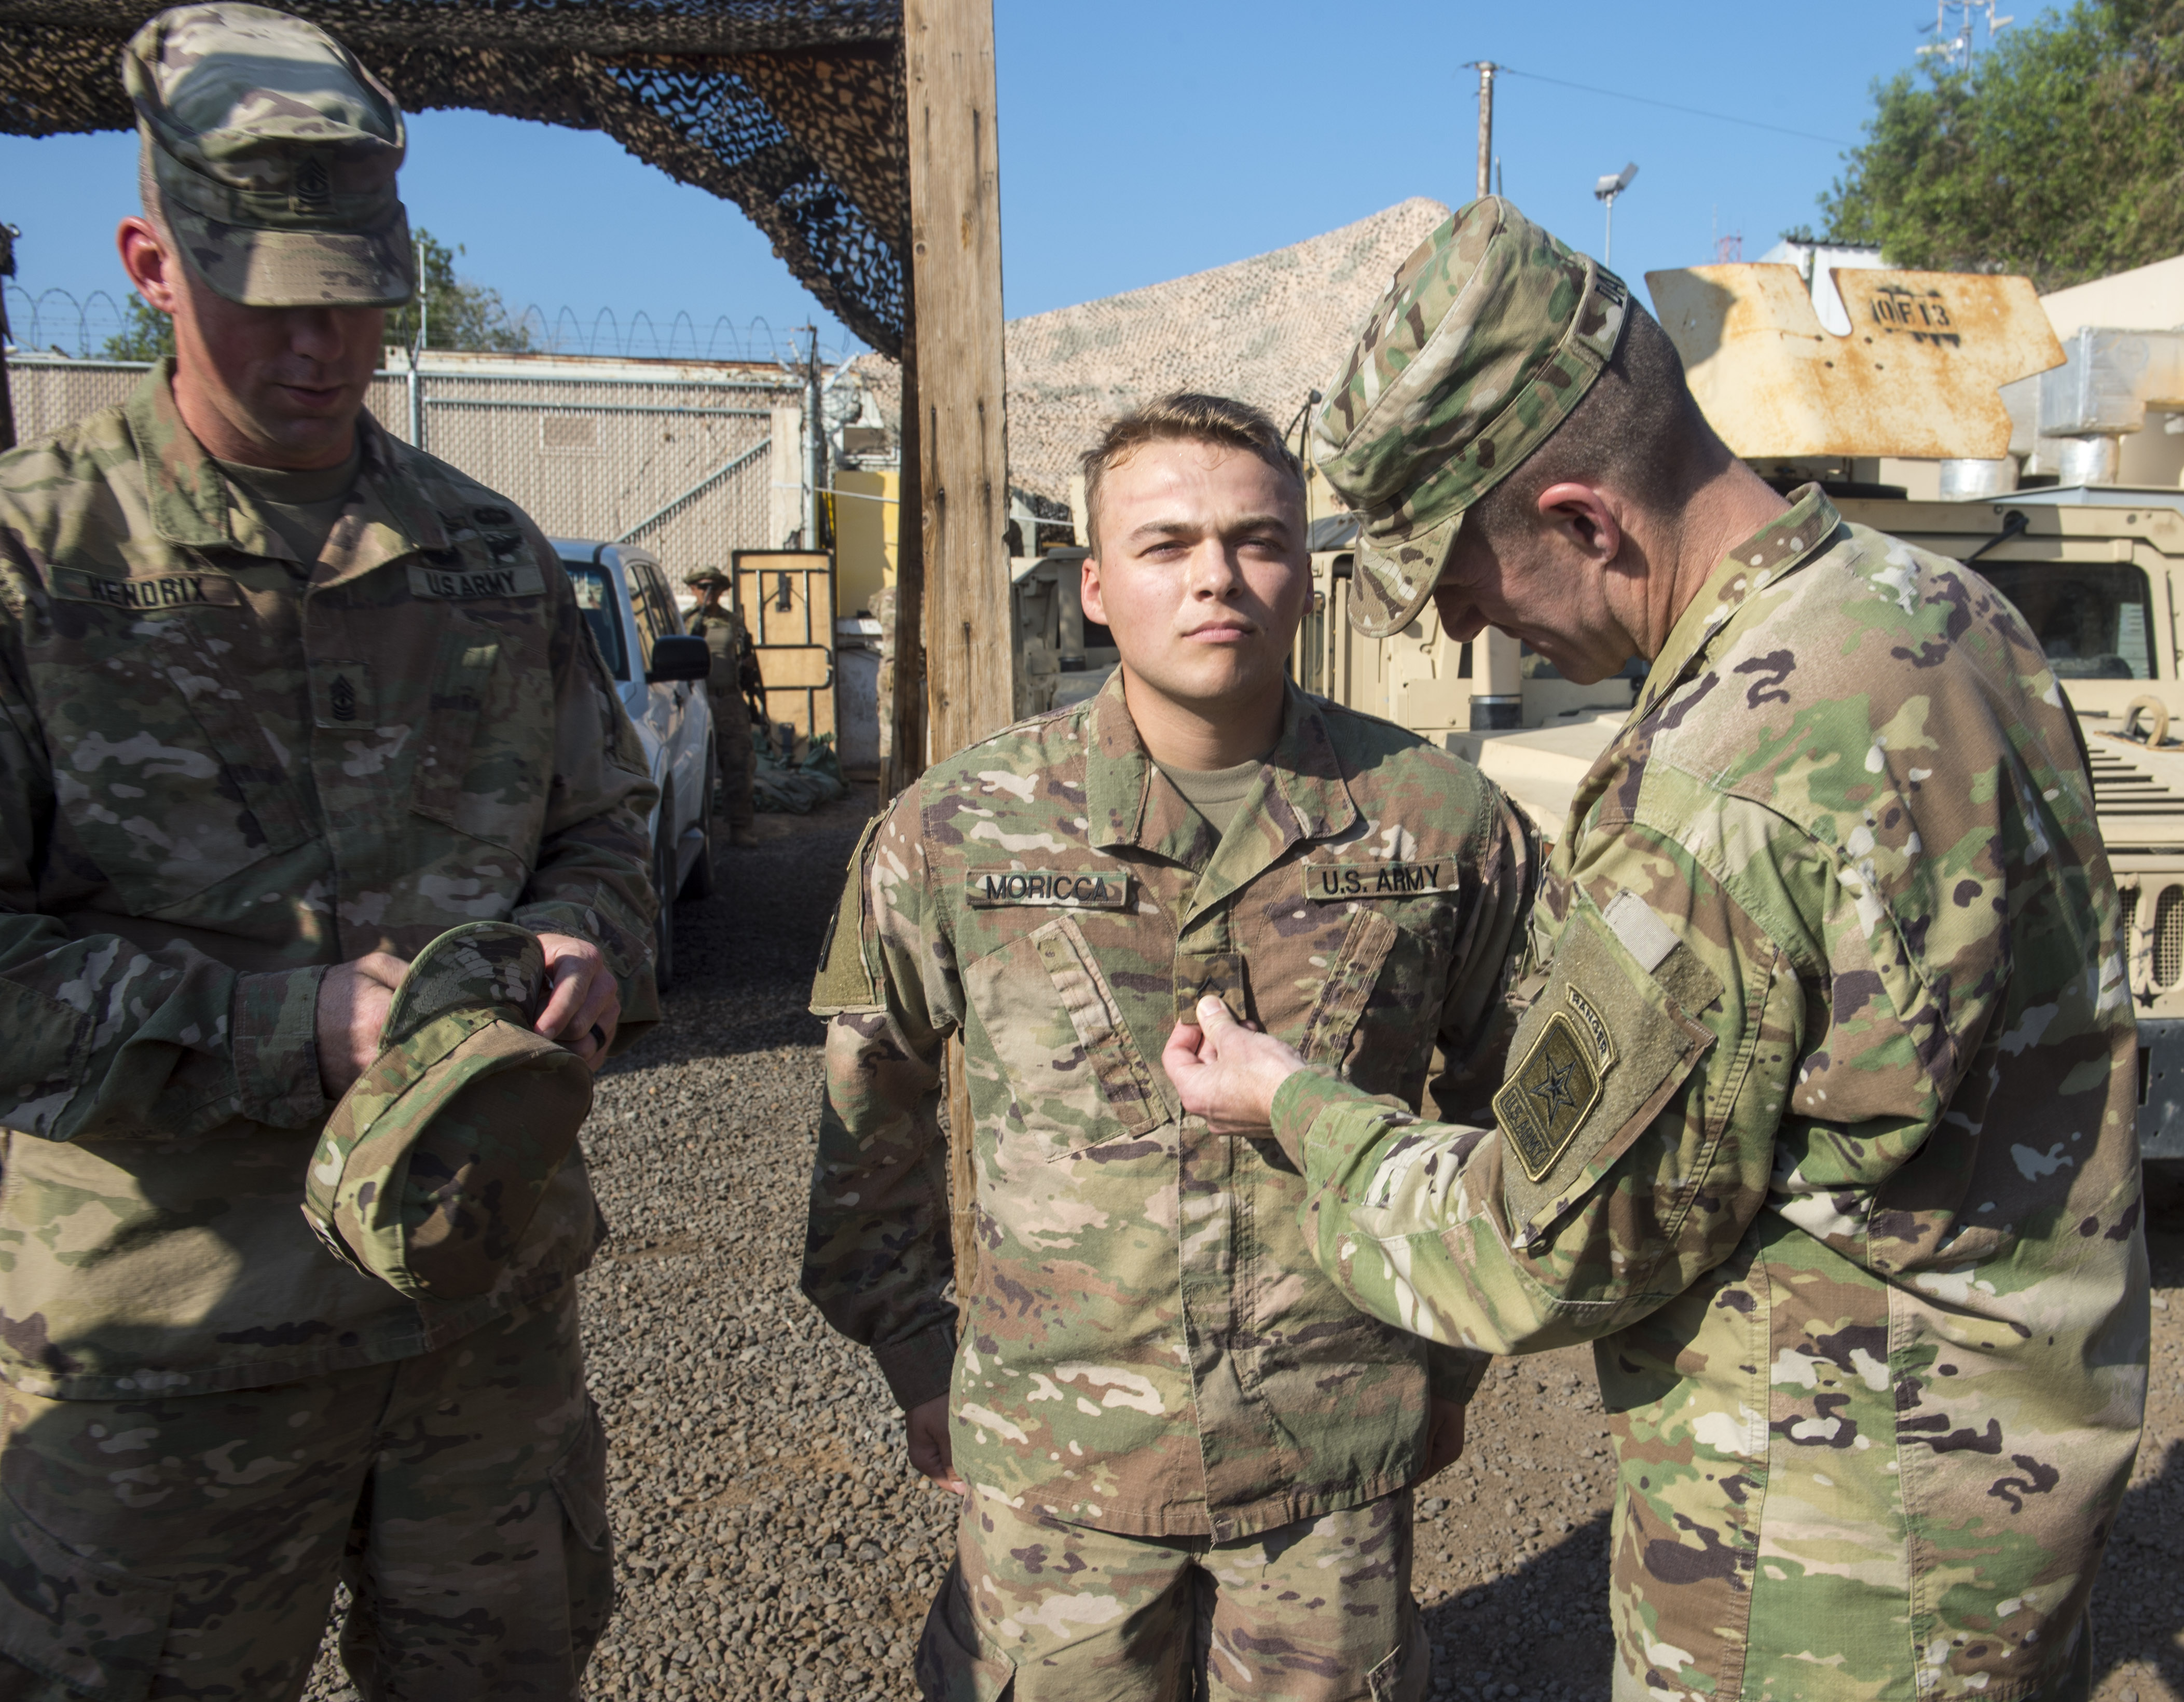 U.S. Sgt. Maj. of the Army Daniel Dailey pins on the rank of a newly promoted Soldier assigned to Combined Joint Task Force - Horn of Africa at Camp Lemonnier, Djibouti, Dec. 21, 2017. Camp Lemonnier was Dailey's last stop before returning to the United States as he visited with Soldiers and other service members deployed and away from their families during the holidays. (U.S. Air Force photo by Staff Sgt. Timothy Moore)